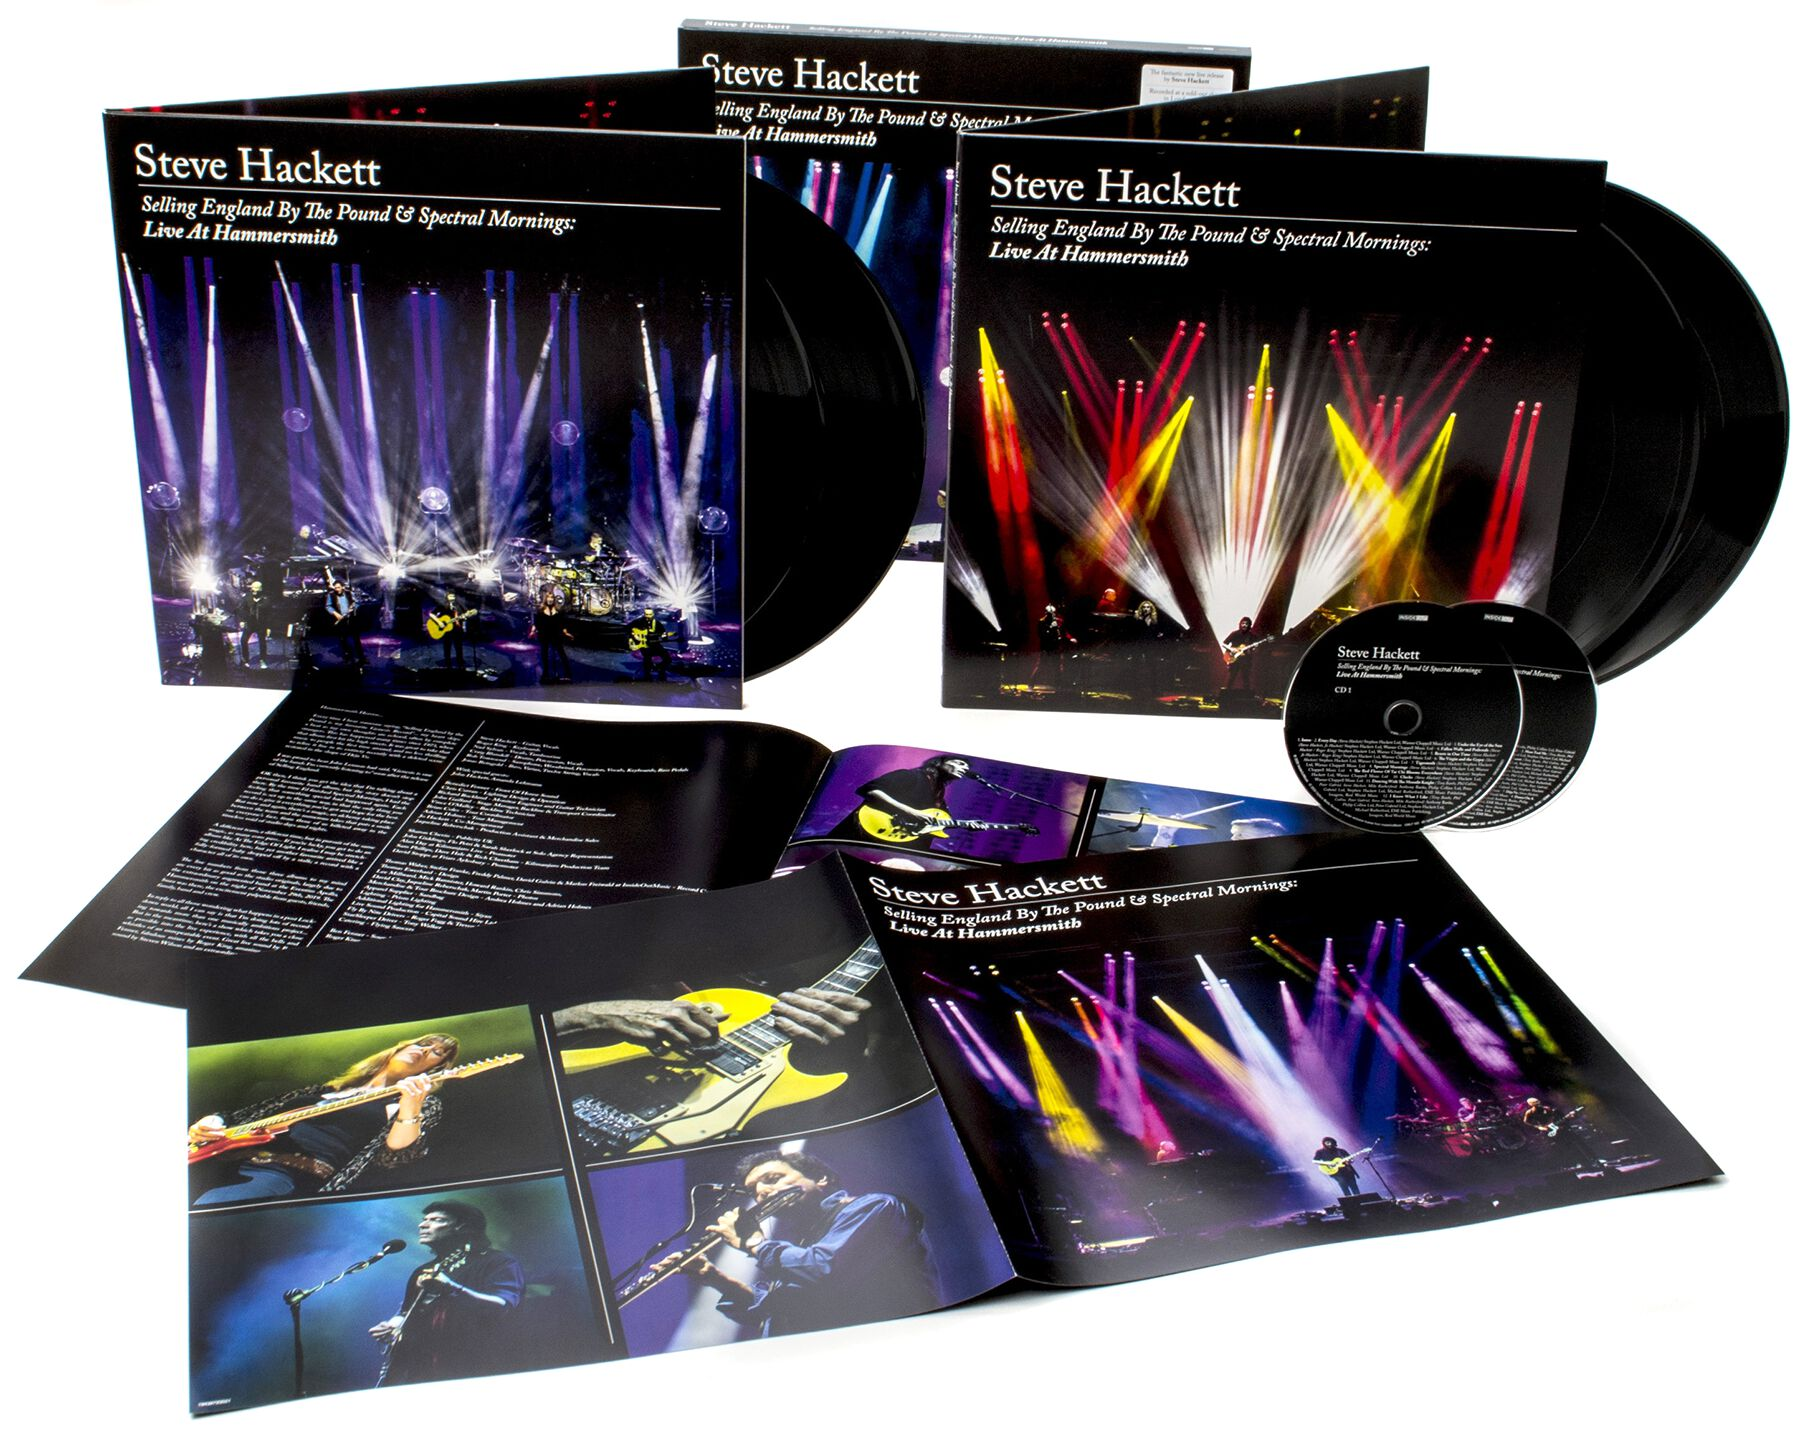 Image of Steve Hackett Selling England By The Pound & Spectral Mornings: Live At Hammersmith 4-LP & 2-CD Standard